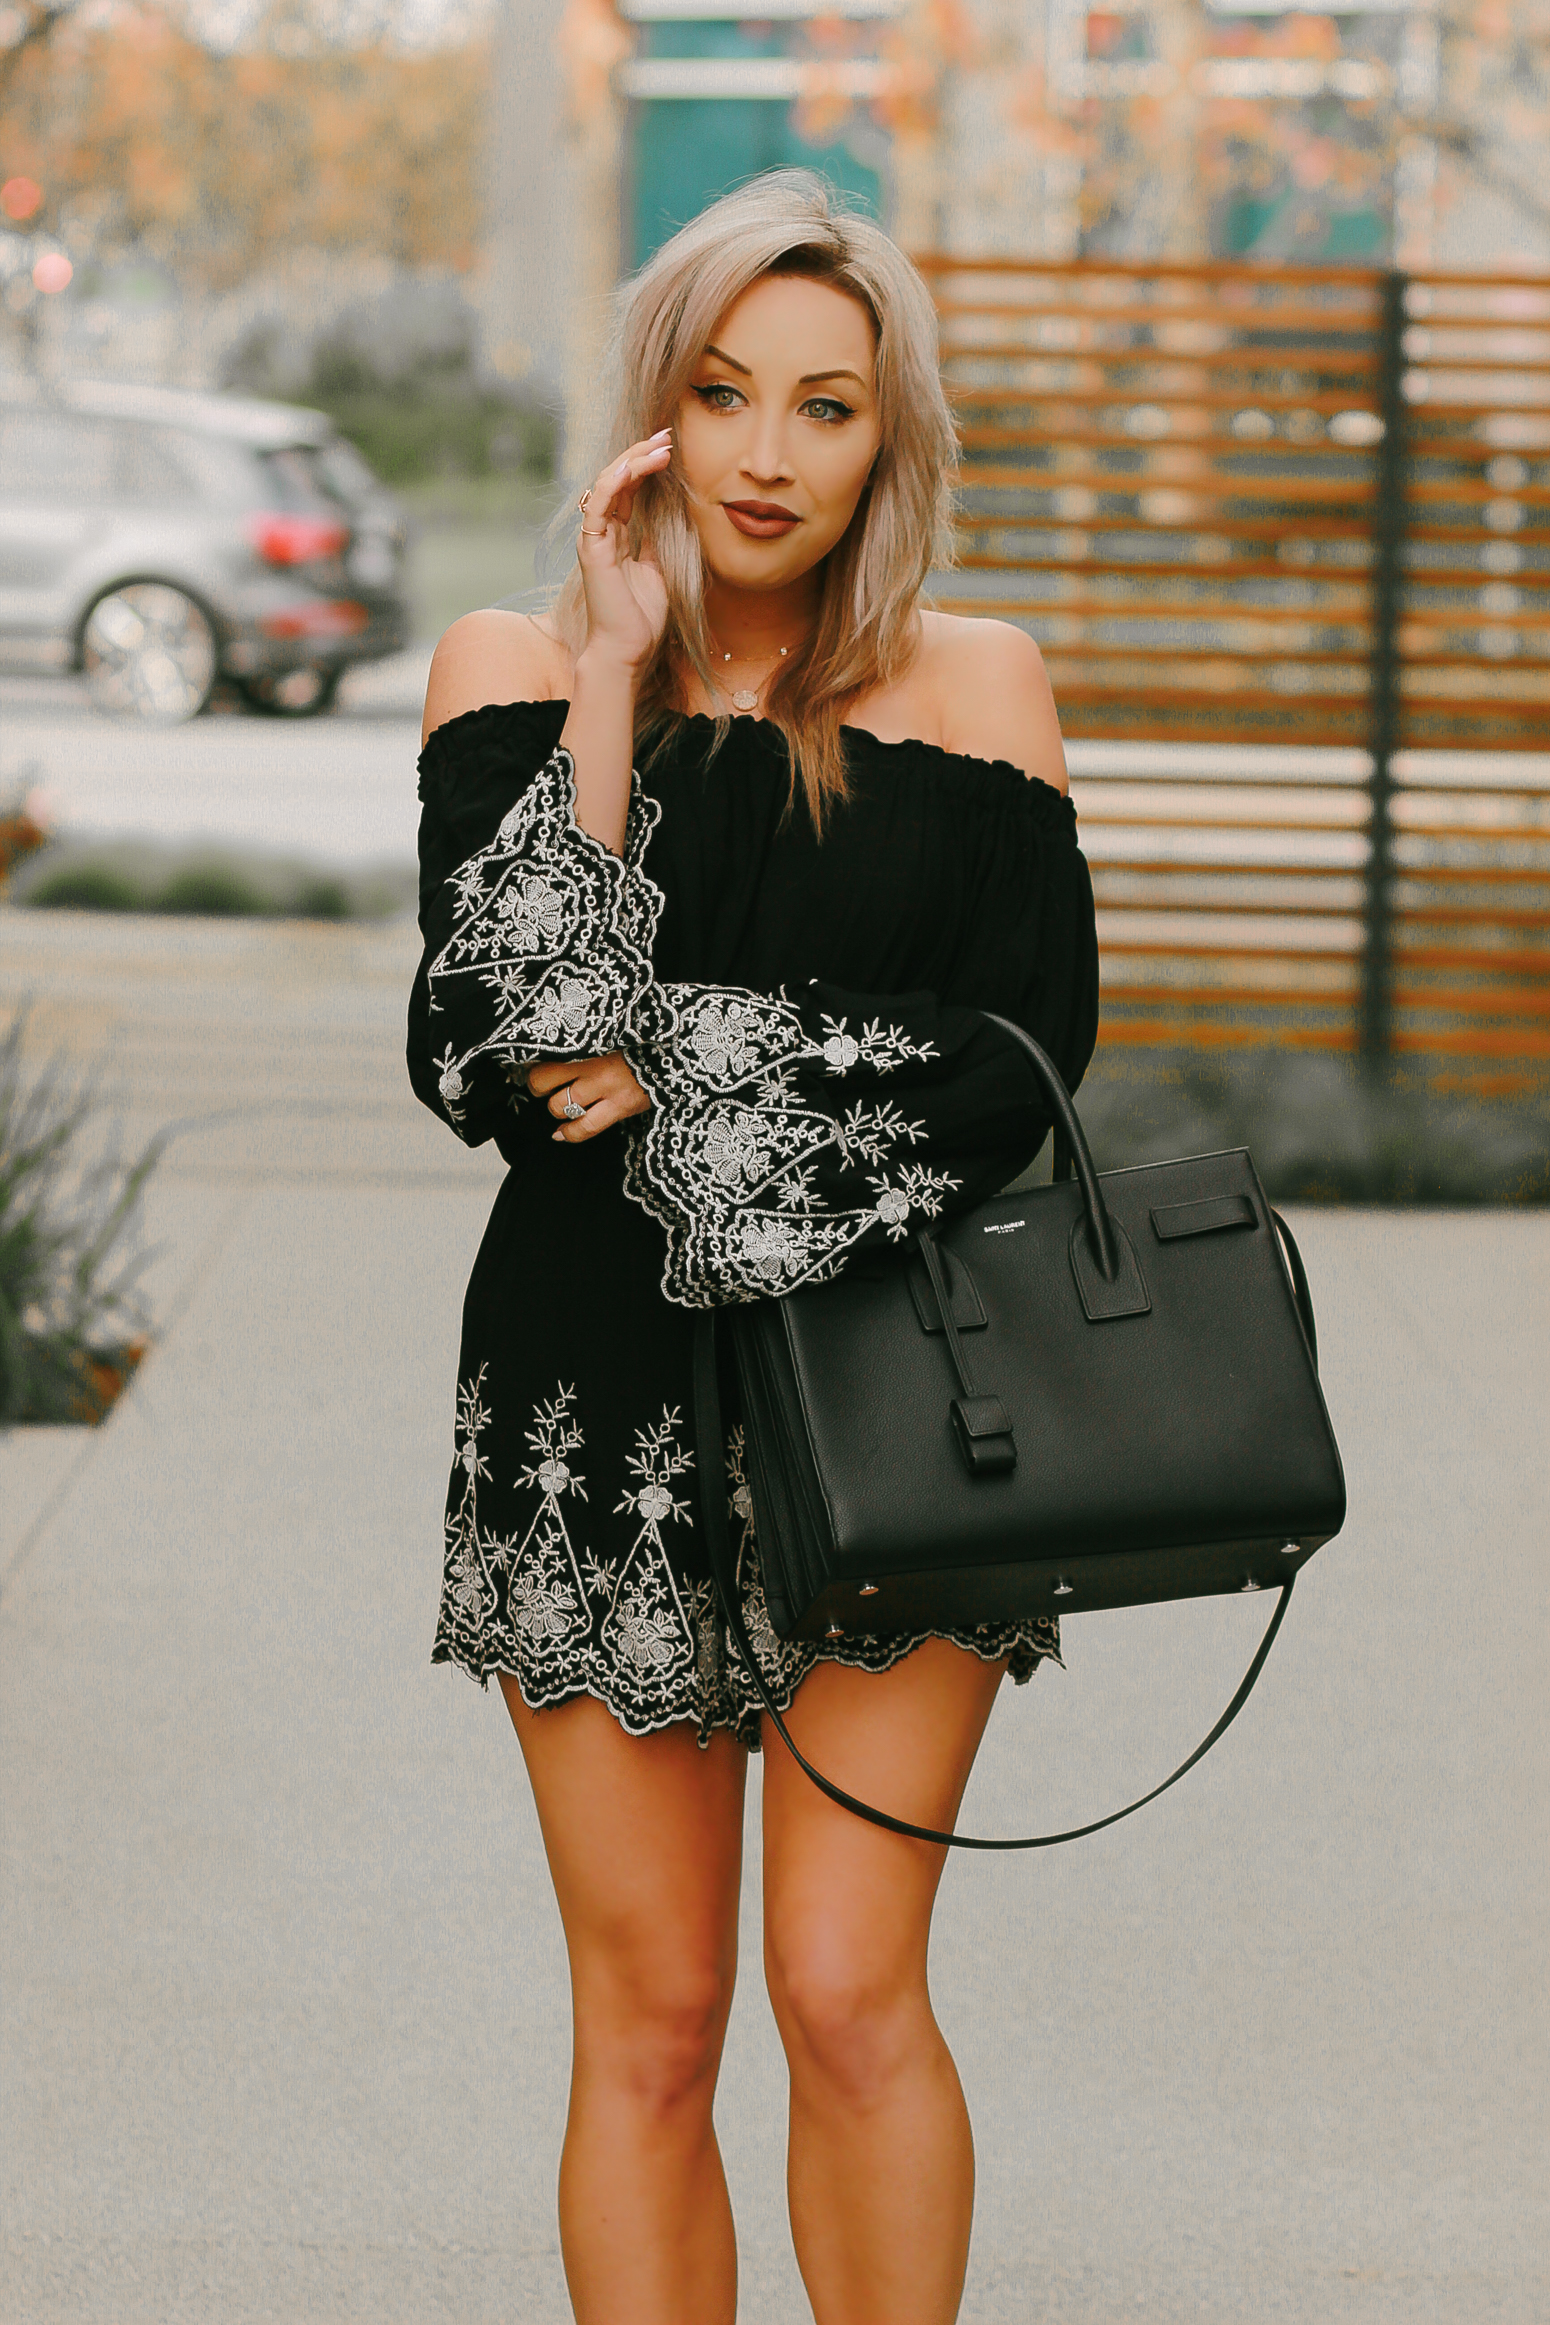 Blondie in the City | @shopather Off The Shoulder Romper | Black Saint Laurent Sac De Jour Bag | YSL Bag